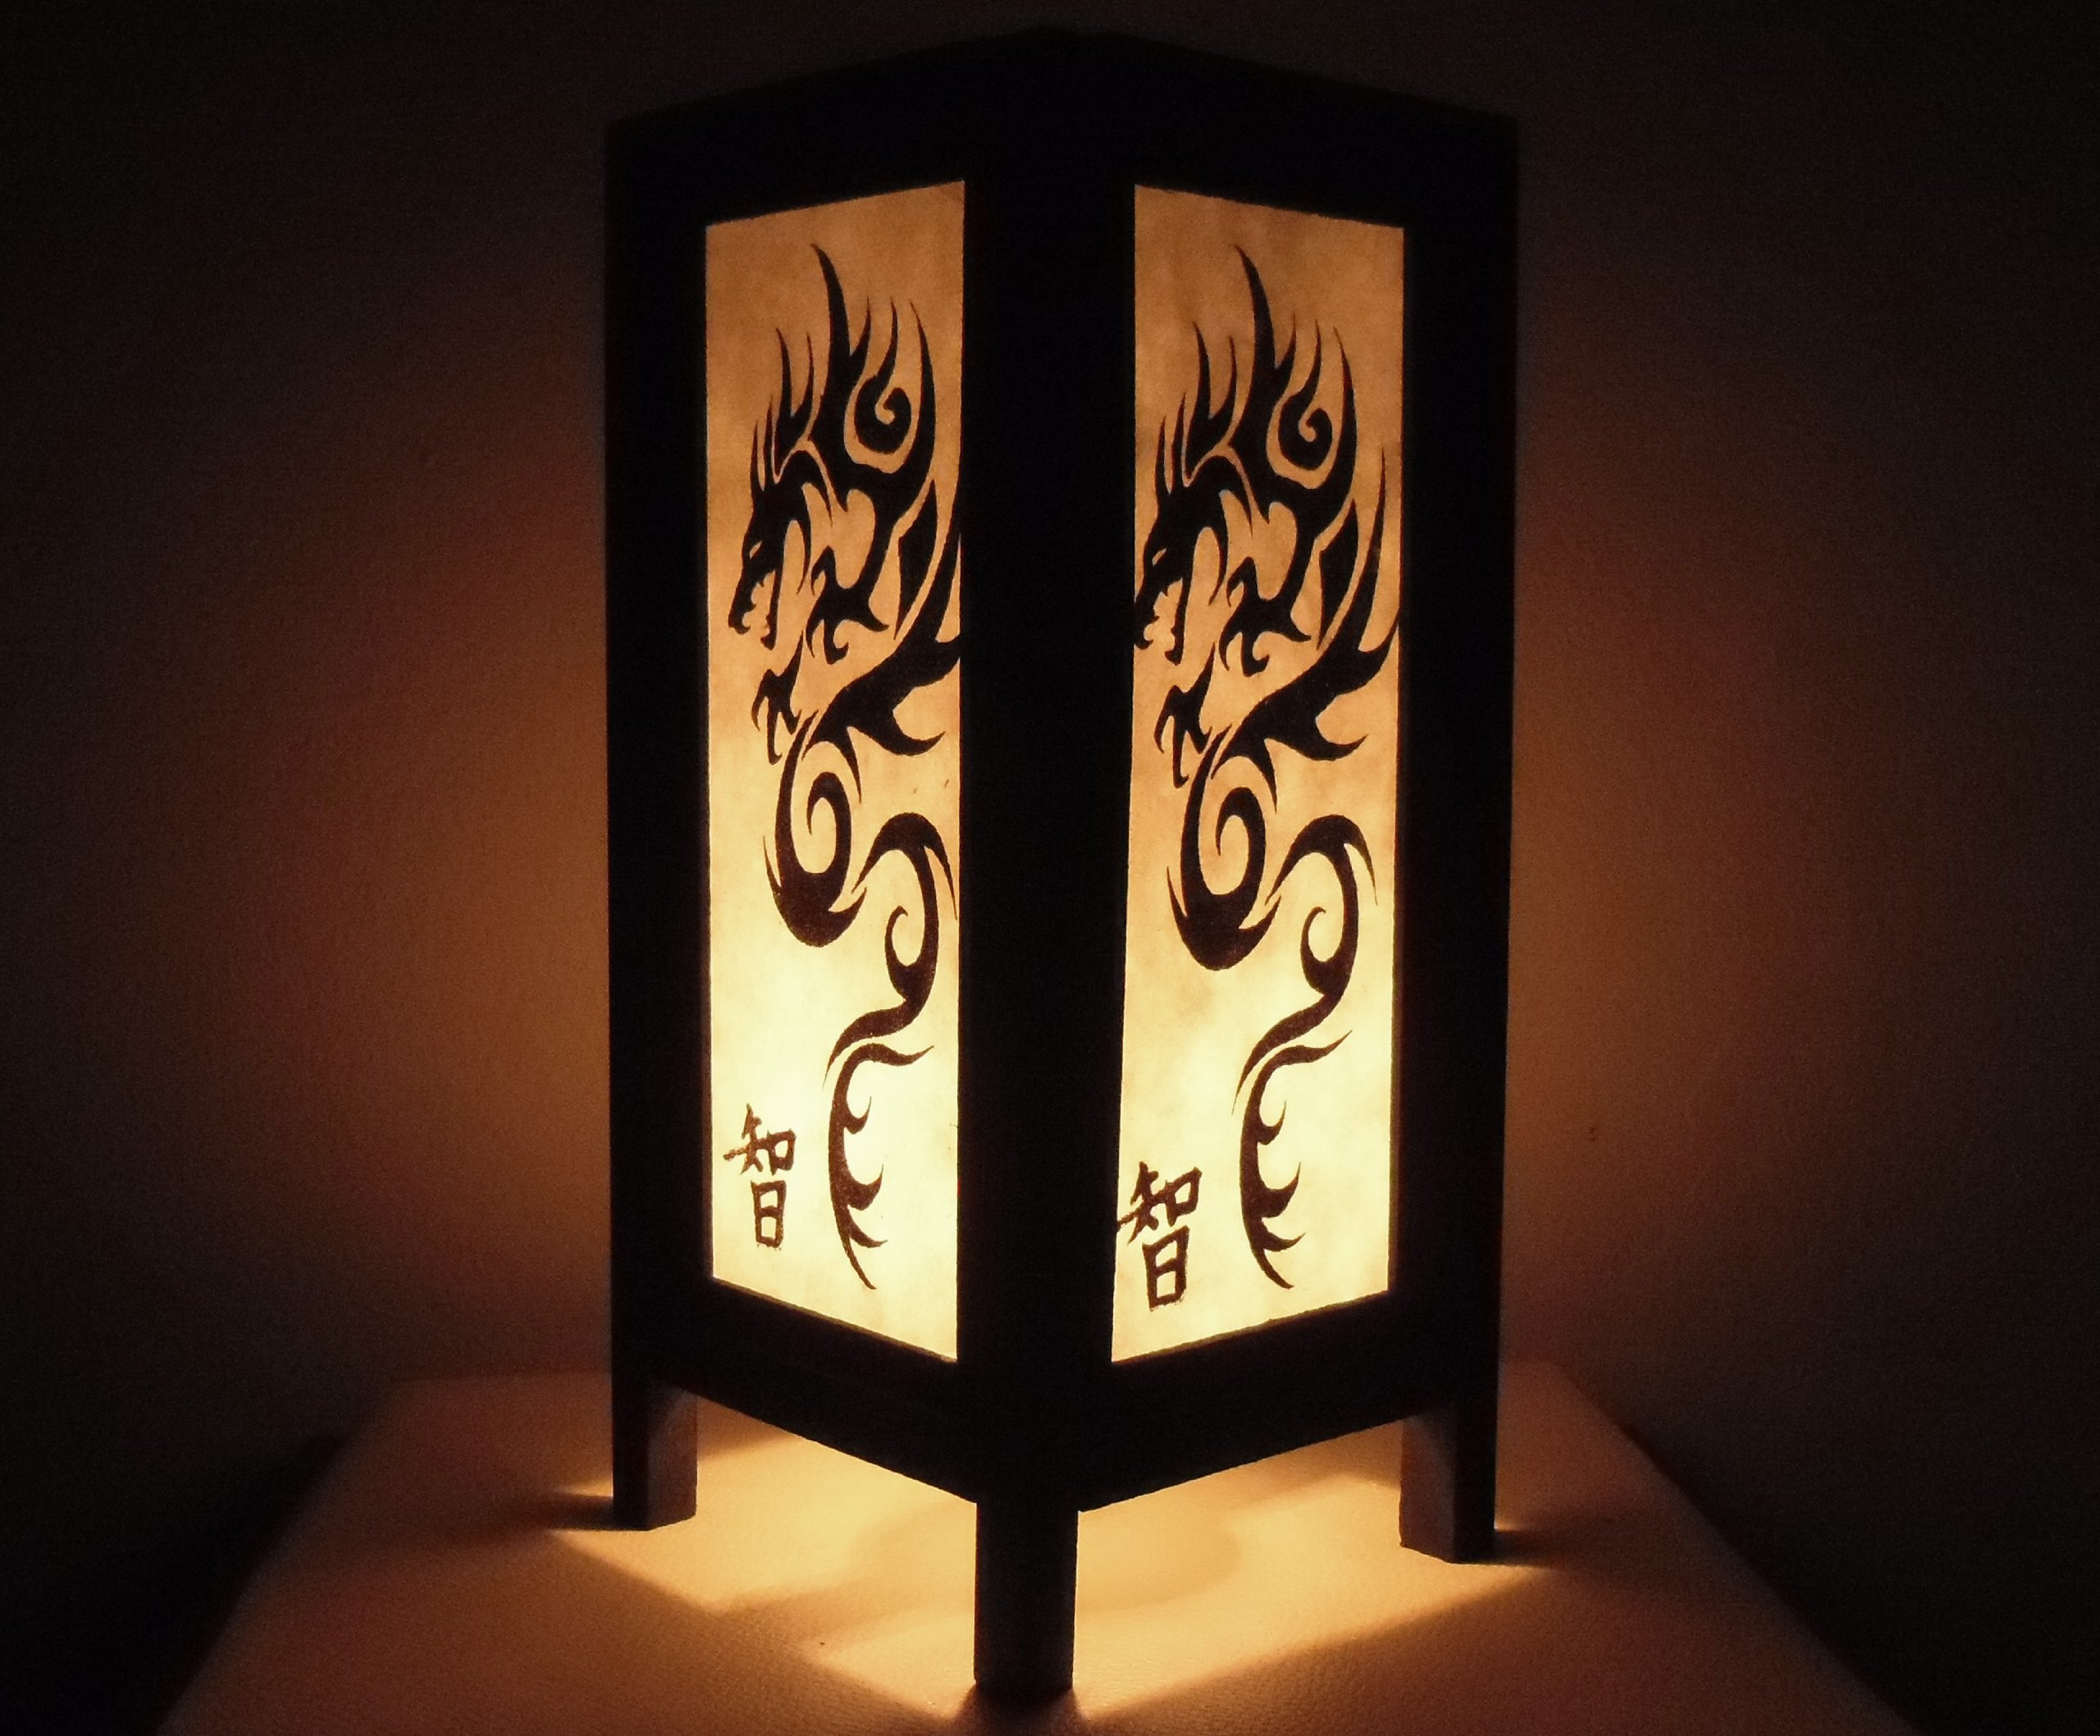 Thai Vintage Handmade Asian Oriental Old White Black China Dragon Bedside Table Light or Floor Wood Paper Lamp Shades Home Bedroom Garden Decor Modern Design from Thailand